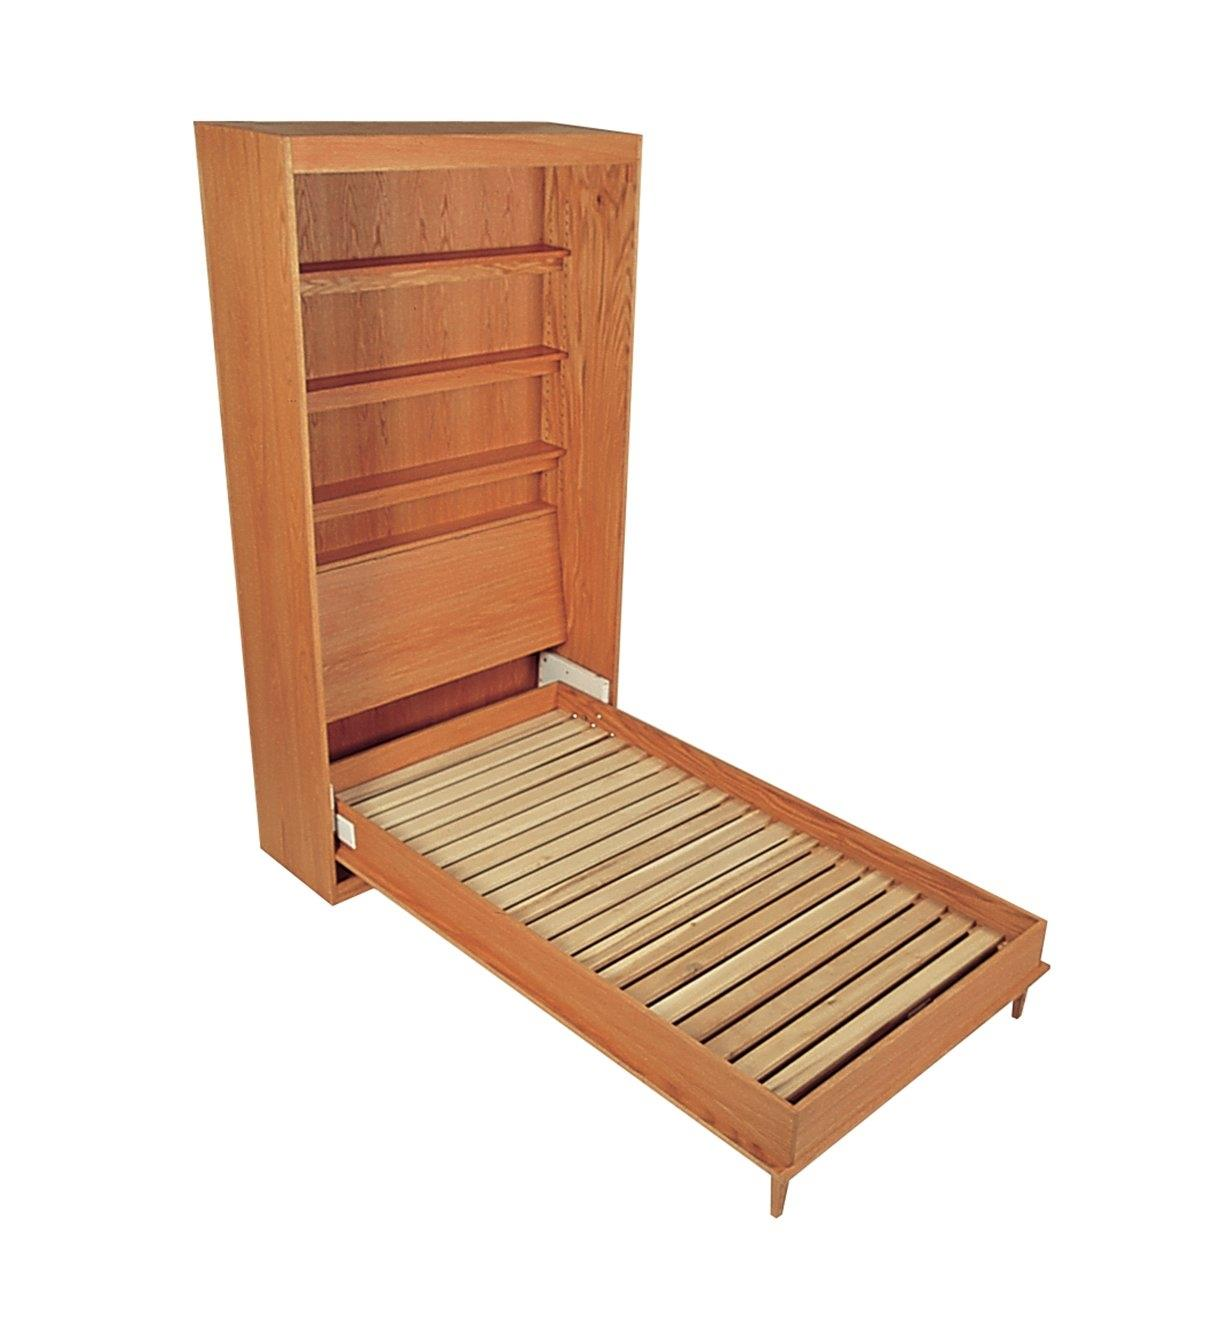 Example of open Murphy bed